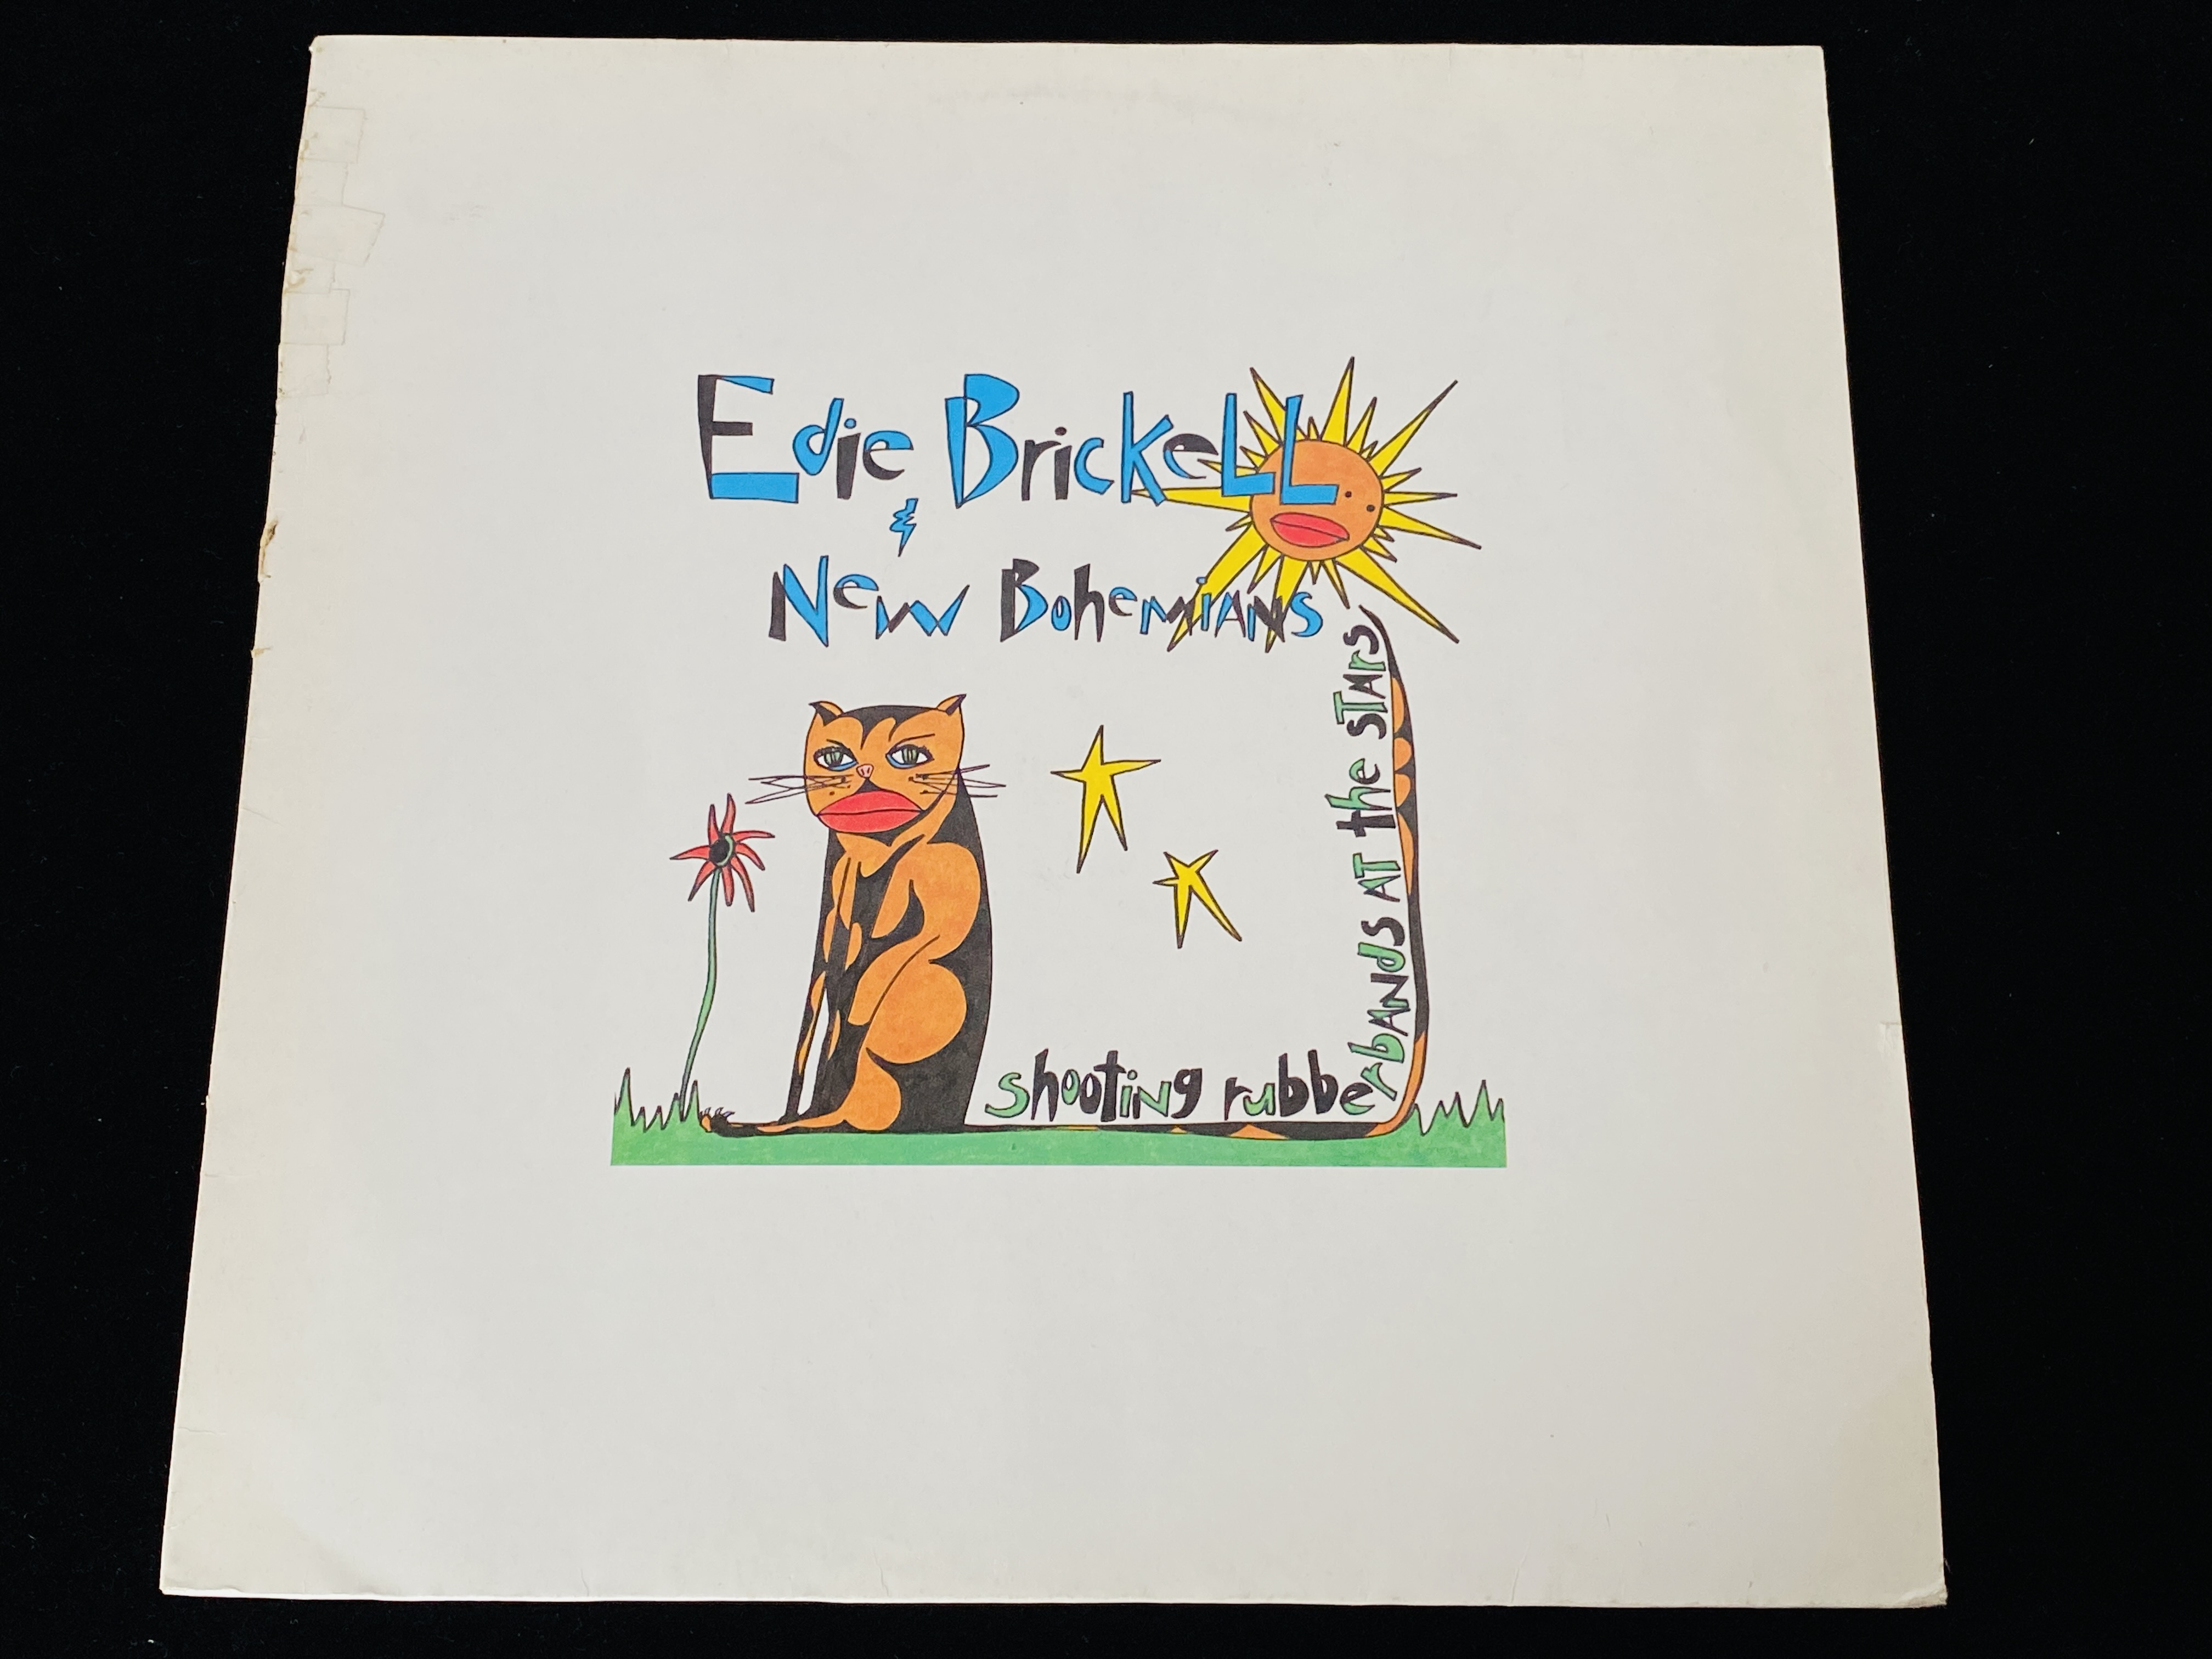 Edie Brickell & New Bohemians - Shooting Rubberbands at the Stars (EU, 1988)